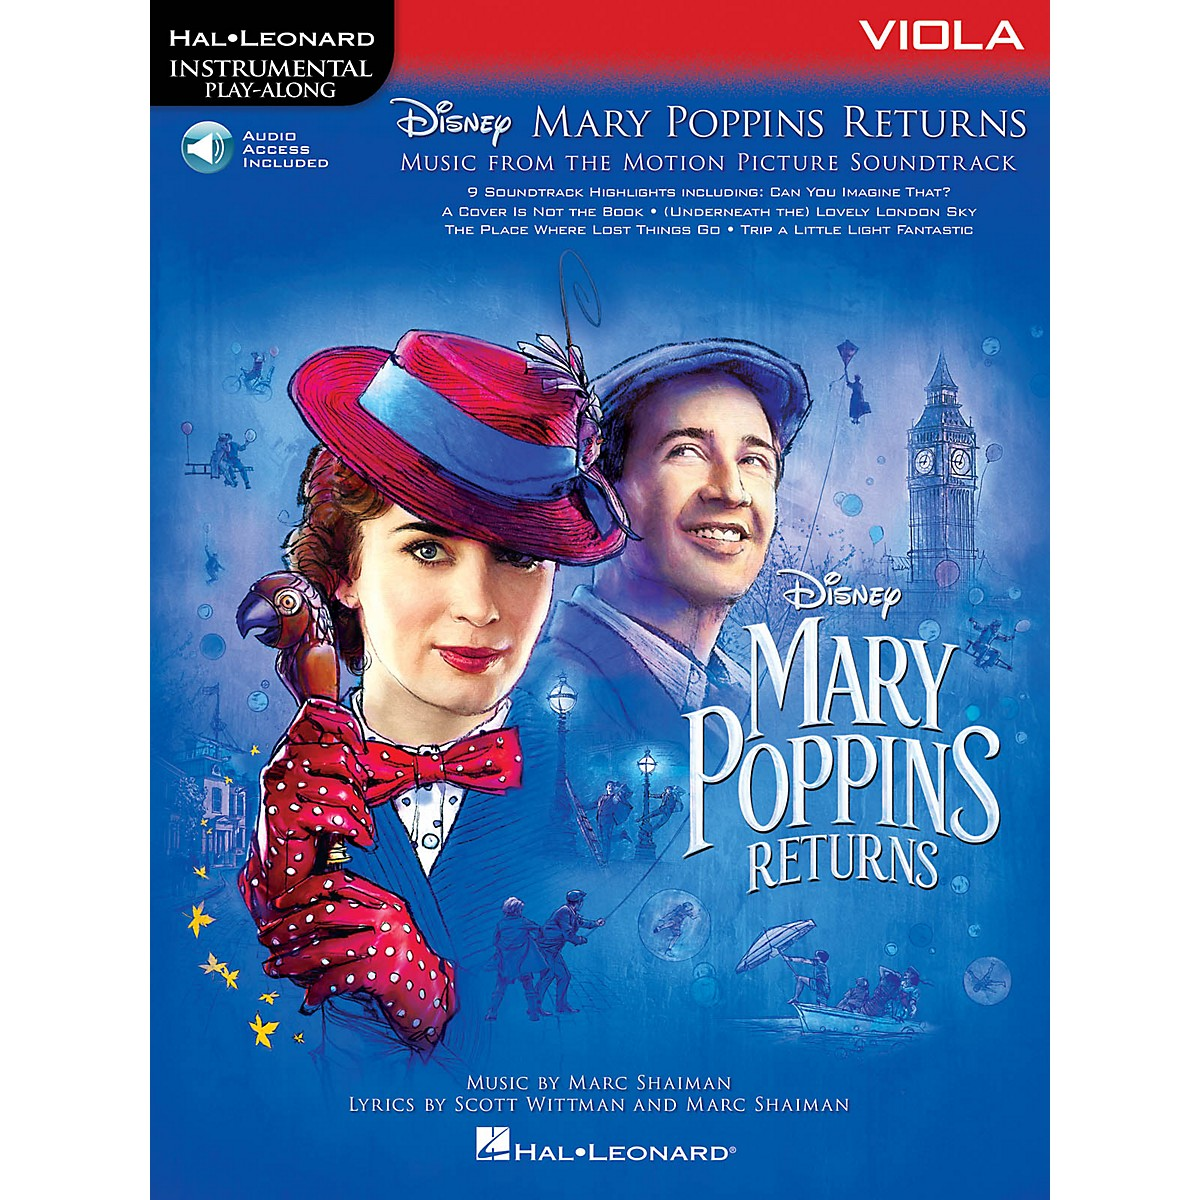 Hal Leonard Mary Poppins Returns for Viola Instrumental Play-Along Songbook Book/Audio Online